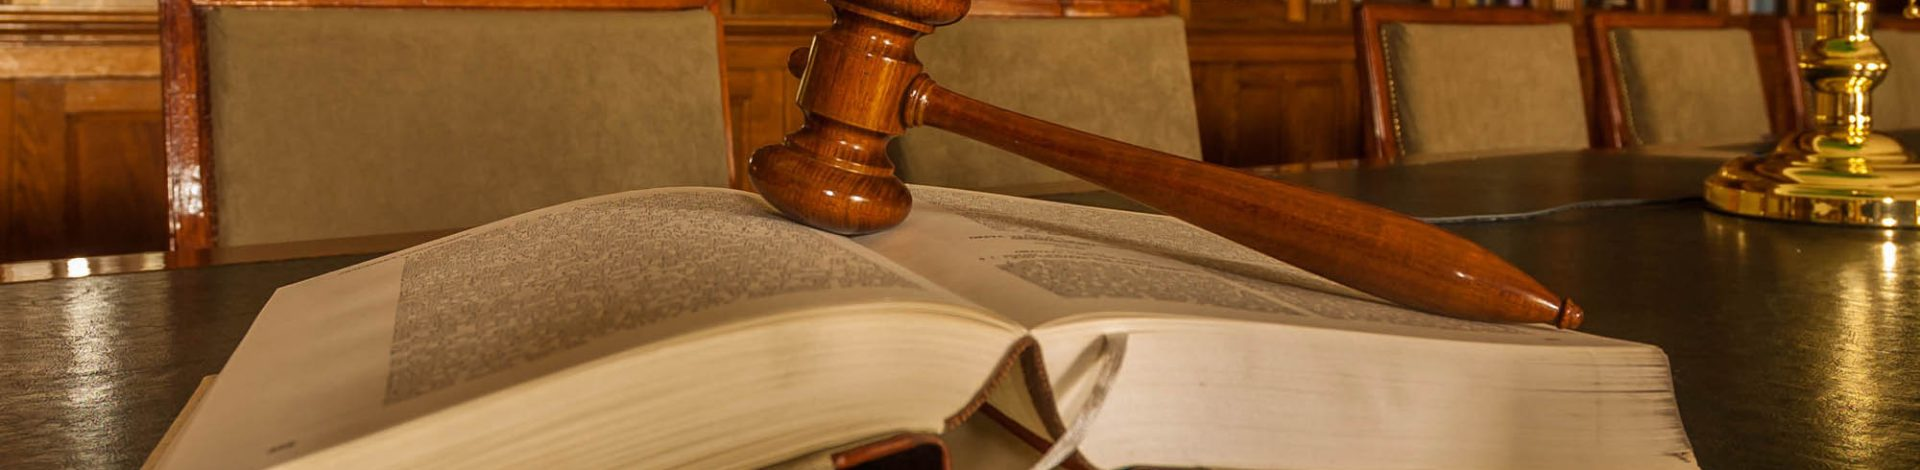 Photo of wooden judge's gavel in the library, focus on the gavel